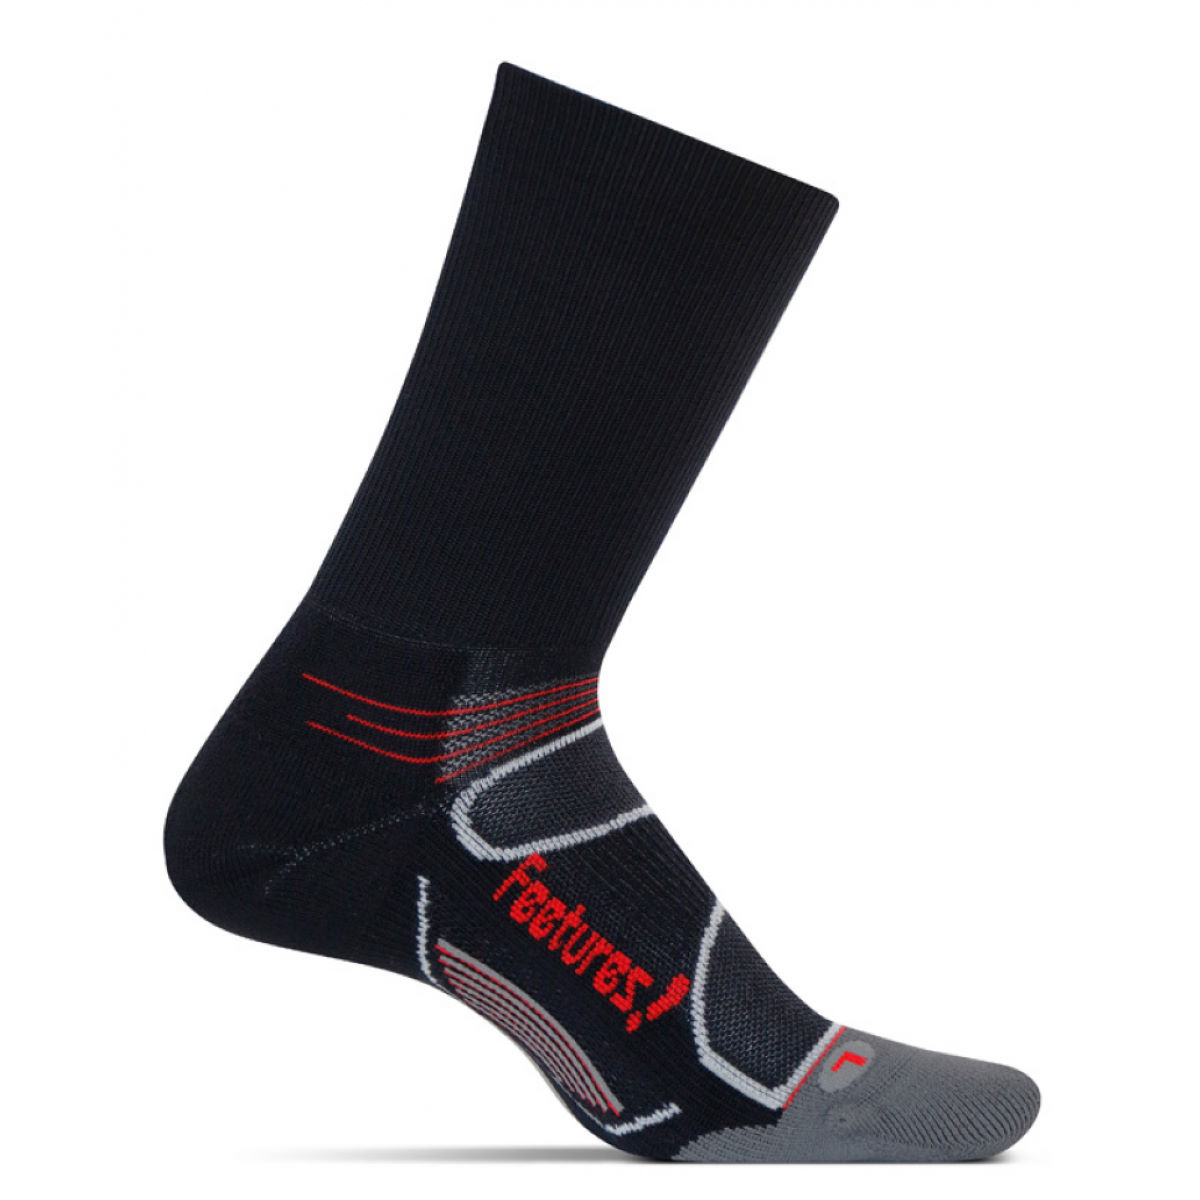 Calcetines Feetures! Elite Light Cushion Mini Crew - Calcetines para correr